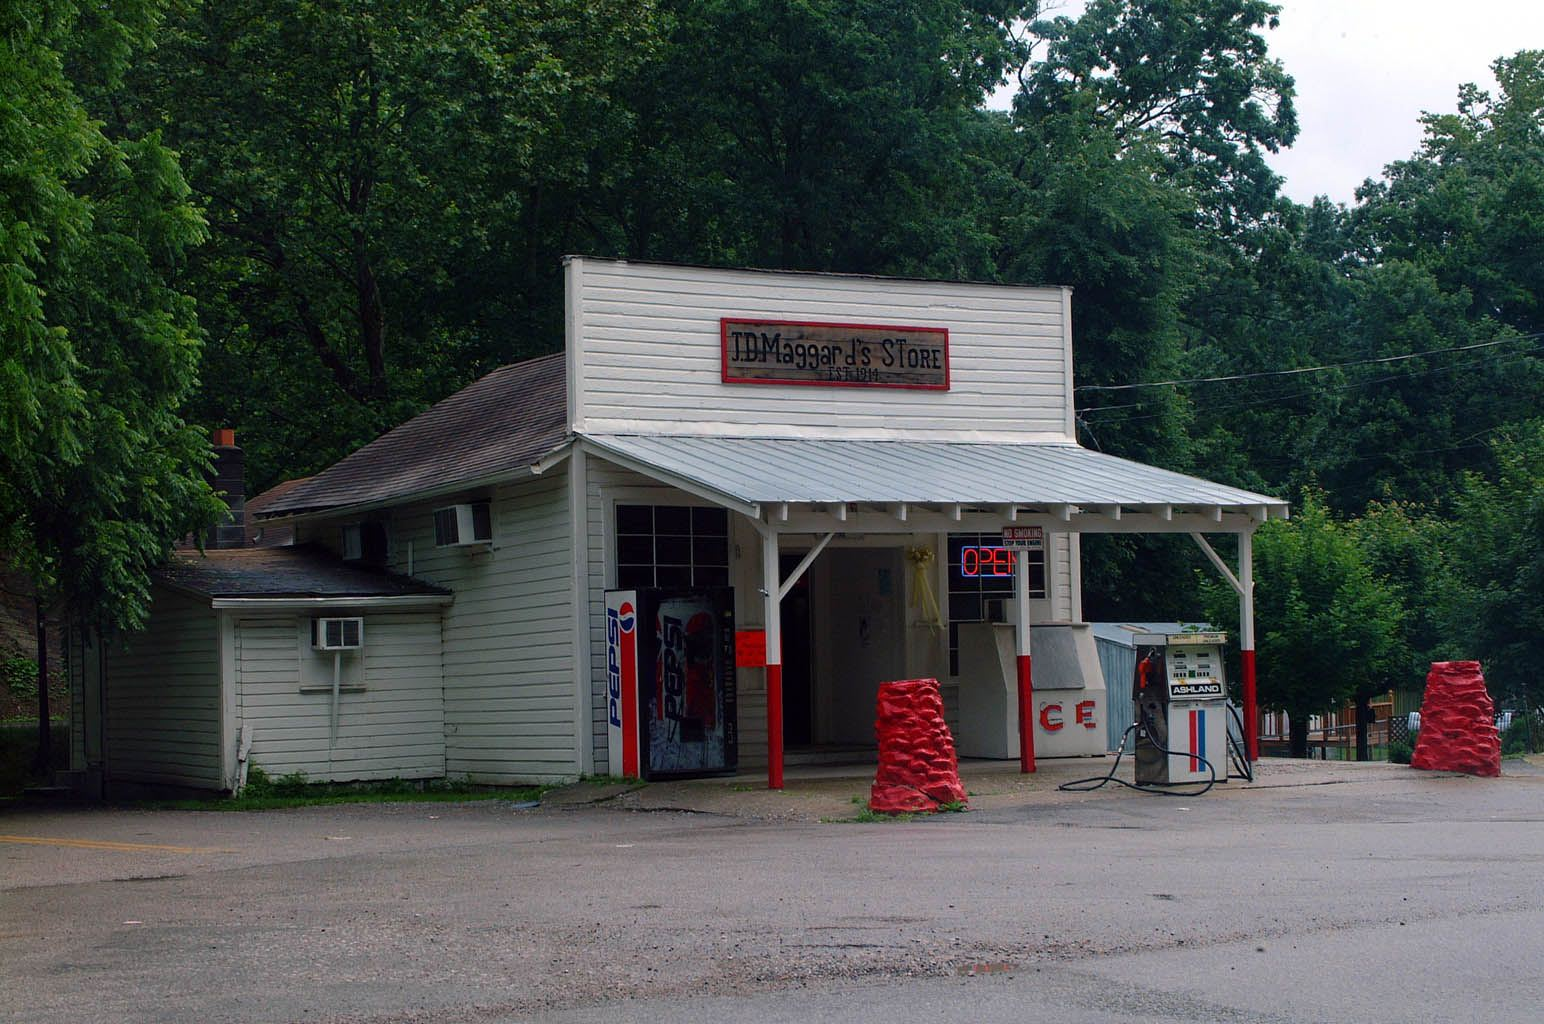 J.D. Maggard's Store - The business opened in 1914 and has been family owned ever since. J.D. Maggard's was featured in the 1980 film Coal Miner's Daughter about country music legend Loretta Lynn.